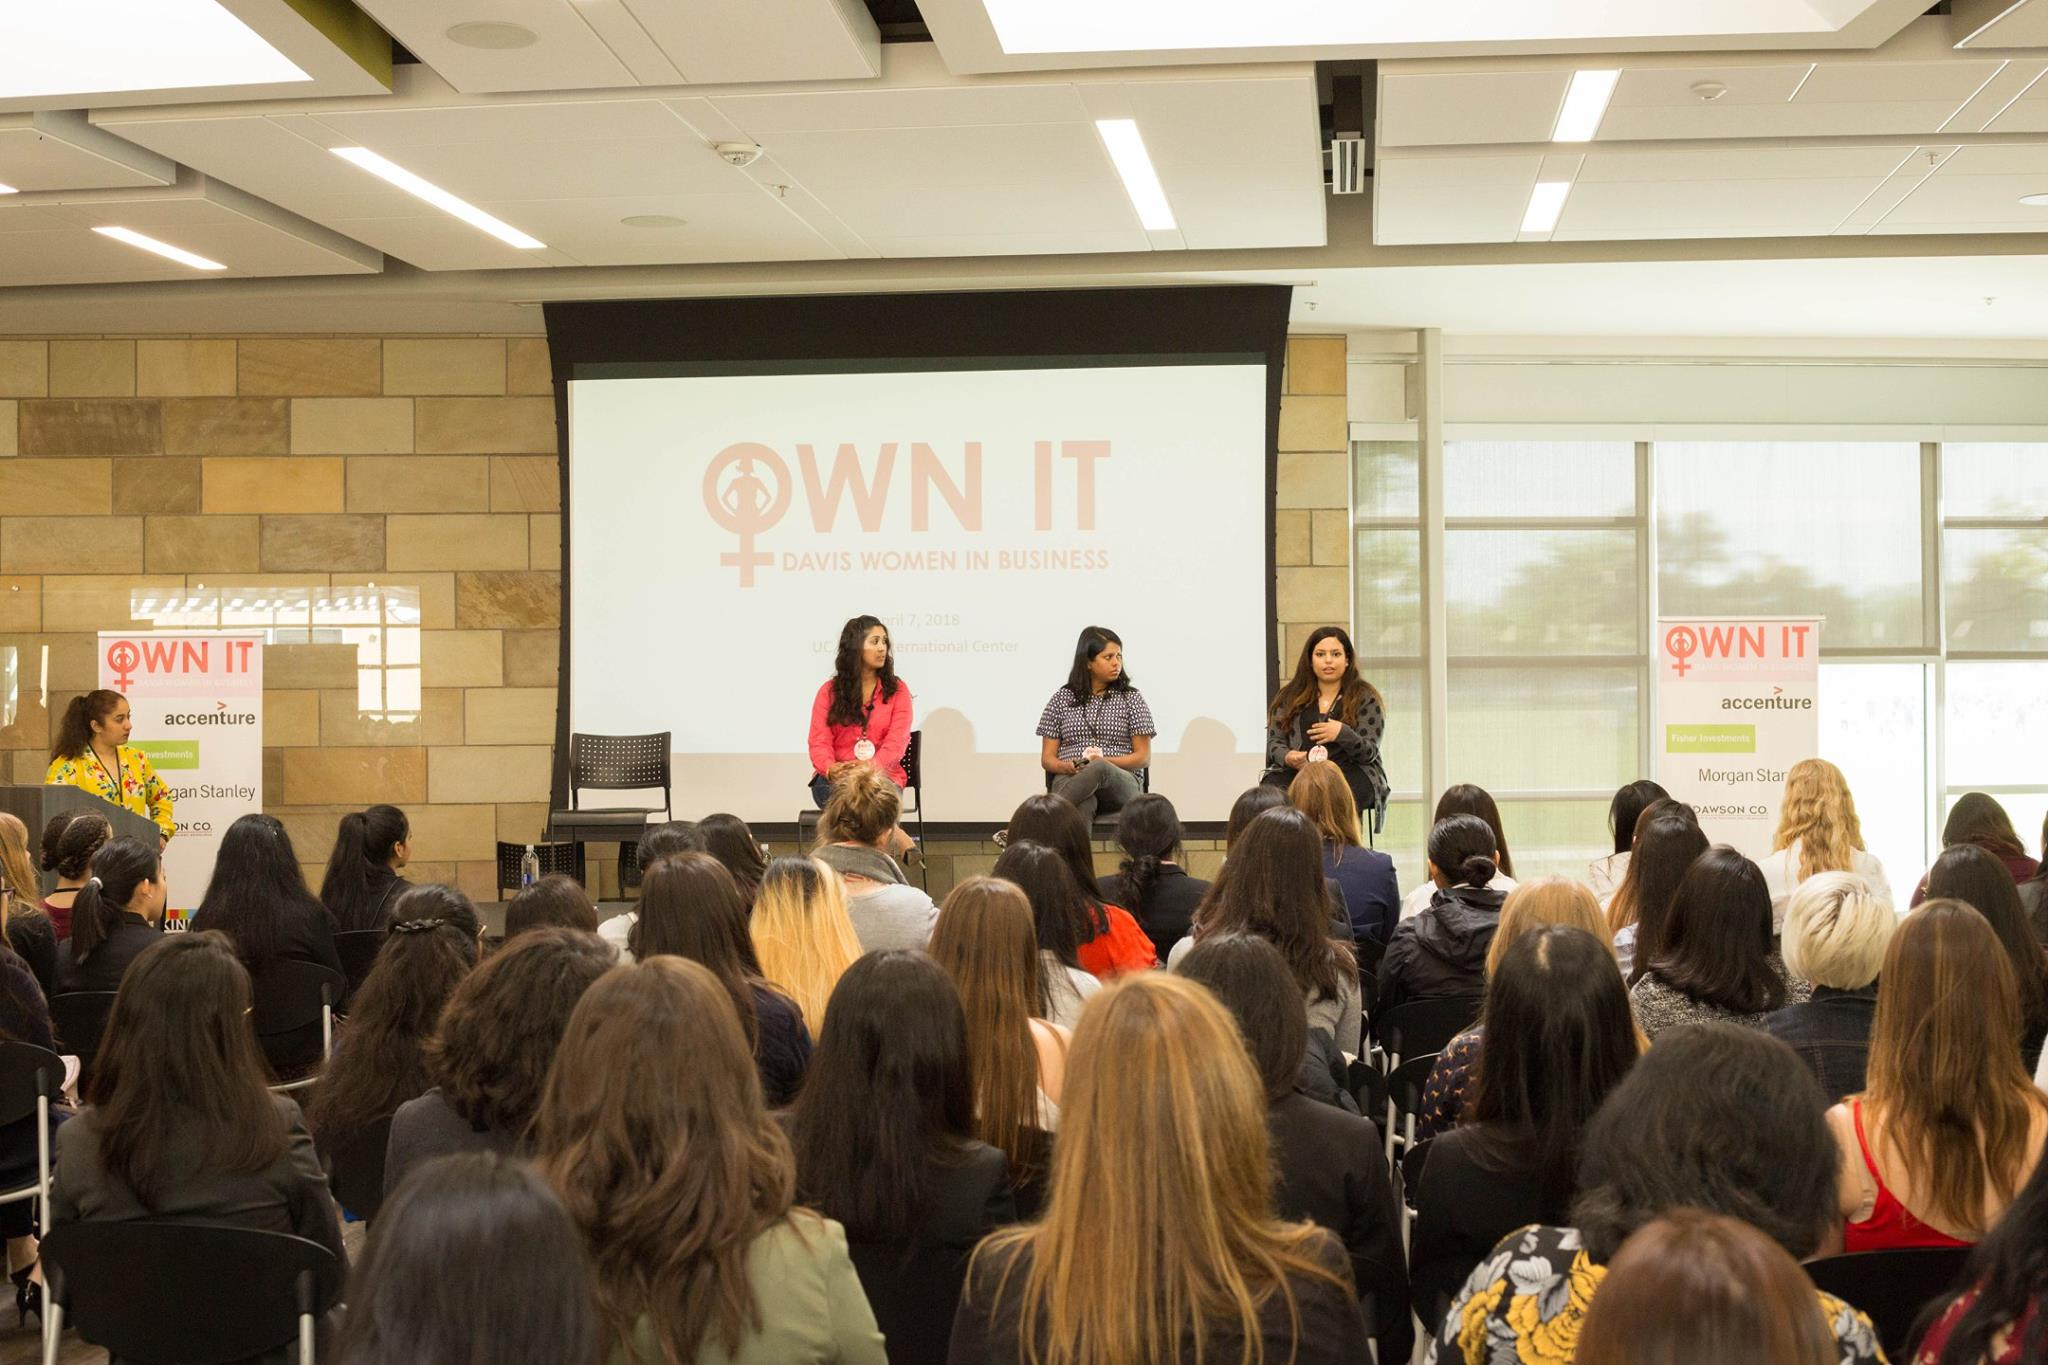 OUR HISTORY - OWN IT was started by Georgetown University students, Helen Brosnan and Kendall Ciesemier, in 2013 as a means to bring awareness to the lack of women in leadership positions across various professional fields. The inaugural Own It summit was held at GU in April of 2014, and brought over 40 speakers and 400 attendees together for a day filled with motivation and female empowerment. In March of 2015, both Georgetown University and Boston College held summits with over 800 and 300 attendees, respectively. The success of the summit and its ambition to empower young women towards leadership roles has made its impact across the nation to numerous universities and the University of California, Davis.